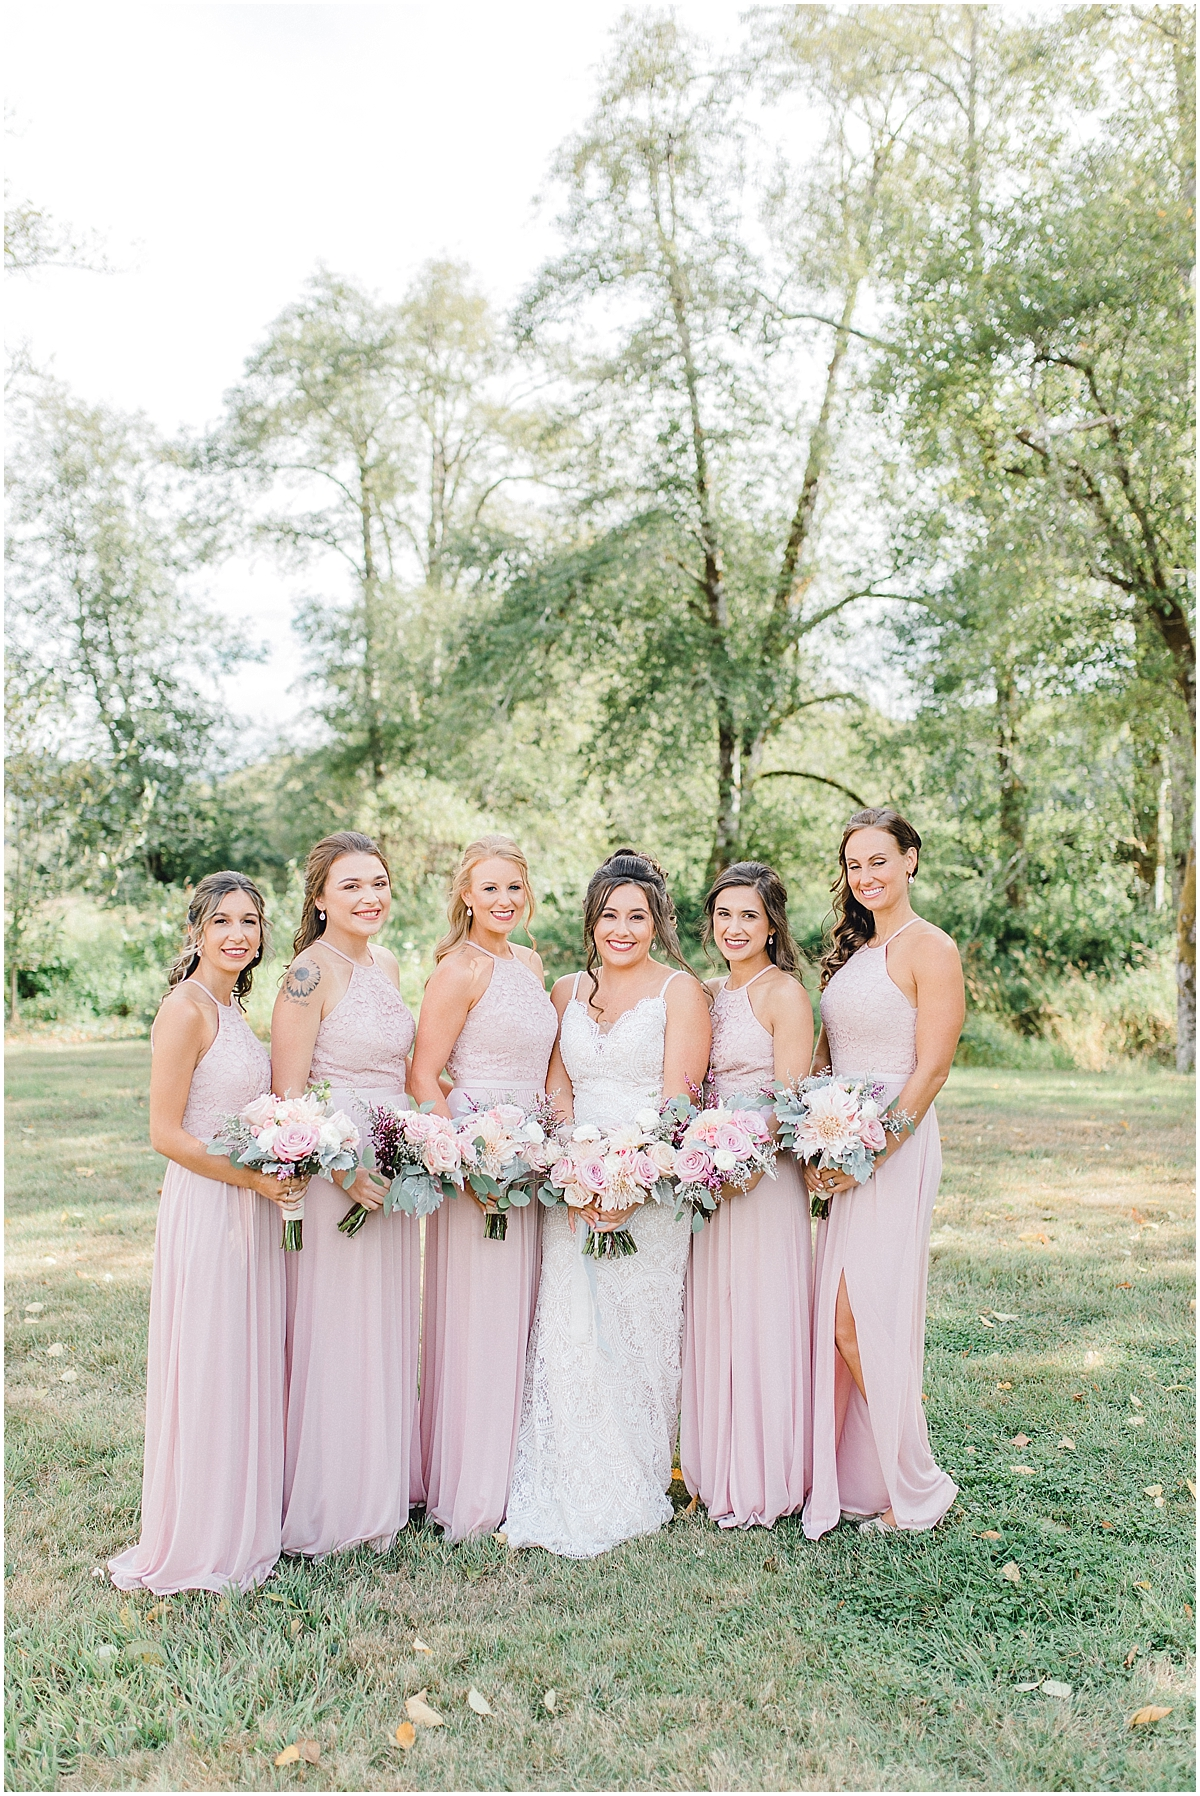 Beautiful mauve wedding in the Pacific Northwest, Emma Rose Company Light and Airy Wedding Photographer Seattle, Washington, Kindred Presets, Wedding Design Details Purple and Blush_0049.jpg